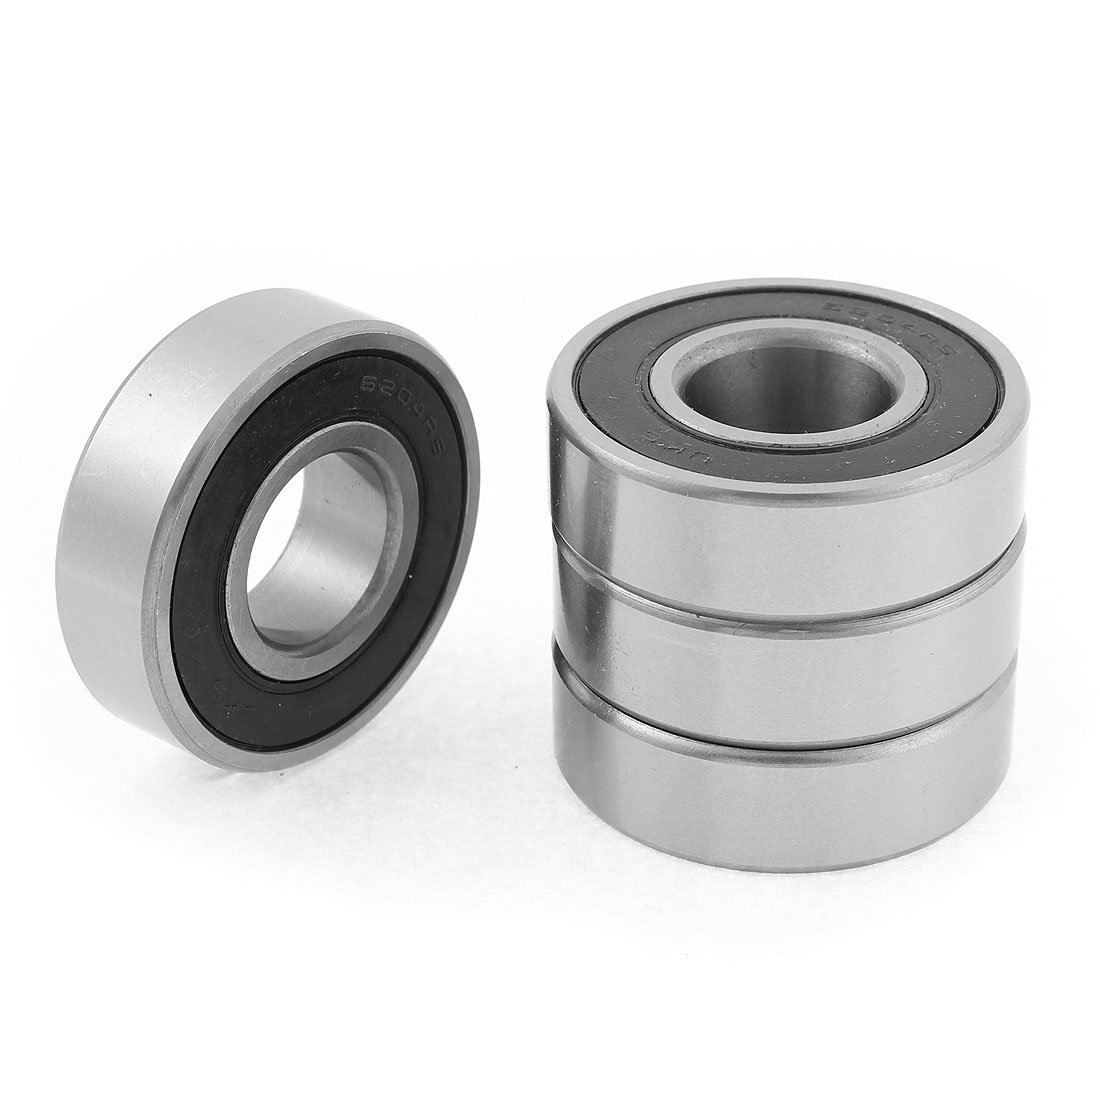 6204RS Rubber Shielded Deep Groove Ball Bearing 20mm x 47mm x 14mm 4pcs